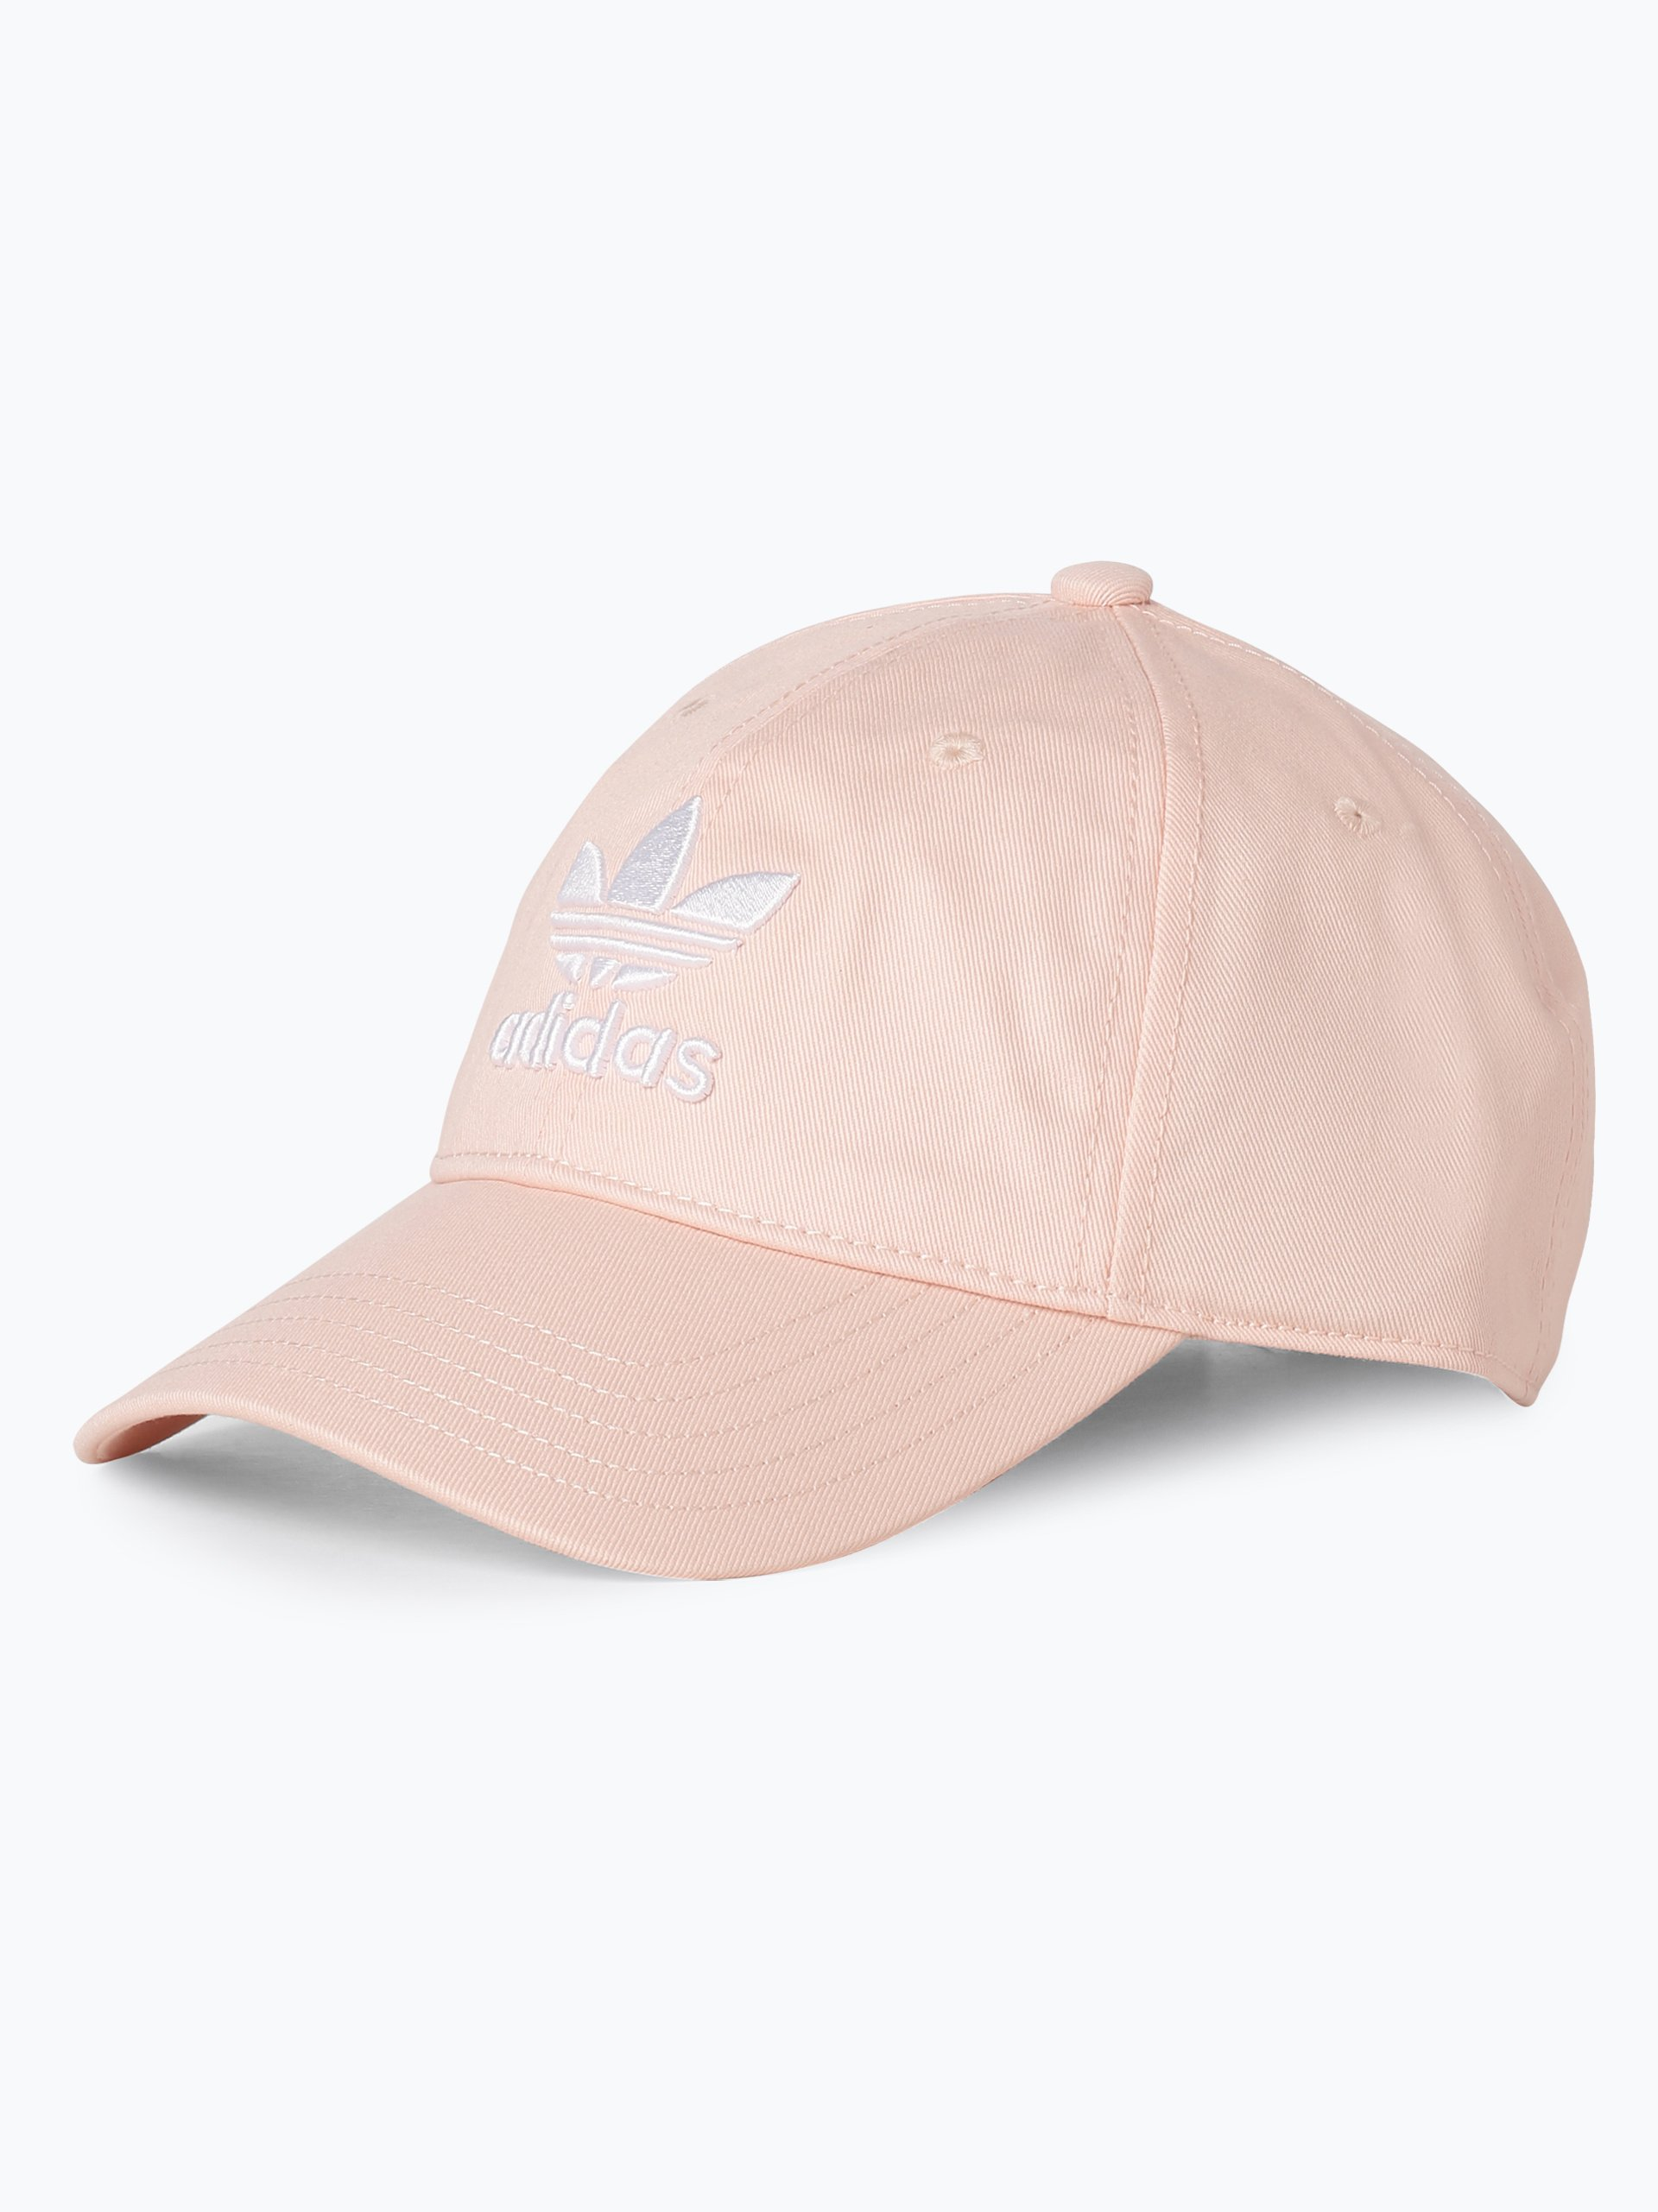 adidas originals damen cap rosa bedruckt online kaufen vangraaf com. Black Bedroom Furniture Sets. Home Design Ideas